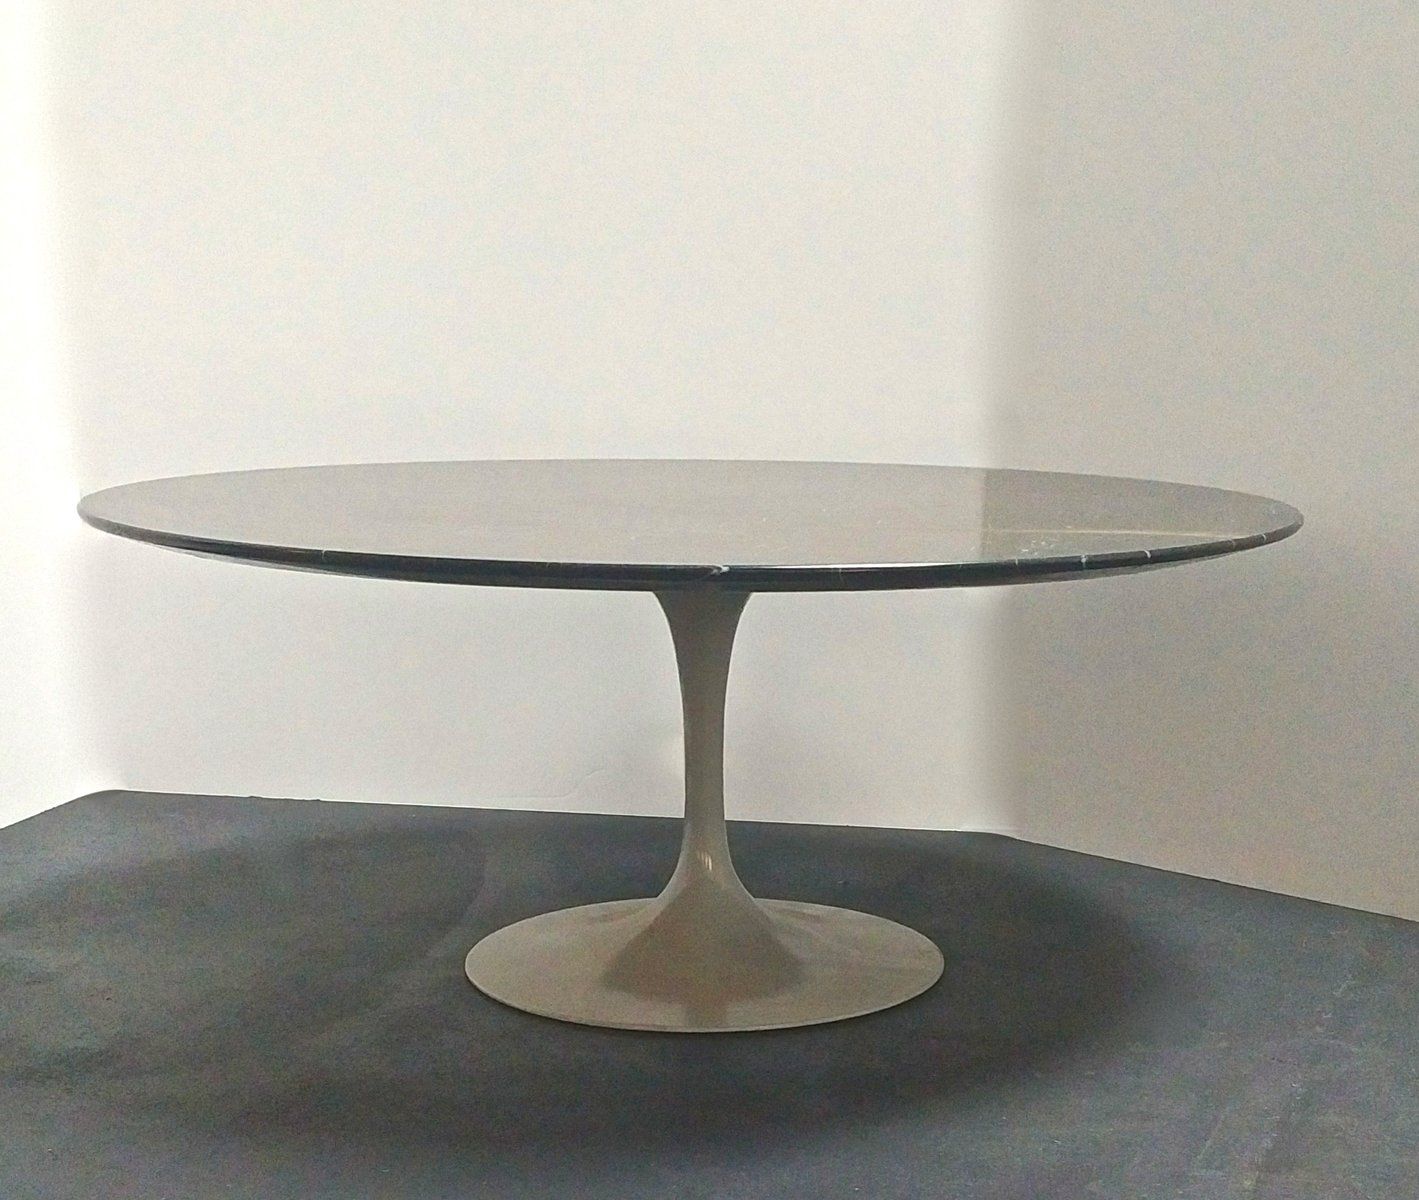 Table basse tulipe par eero saarinen 1960s en vente sur pamono Table basse saarinen